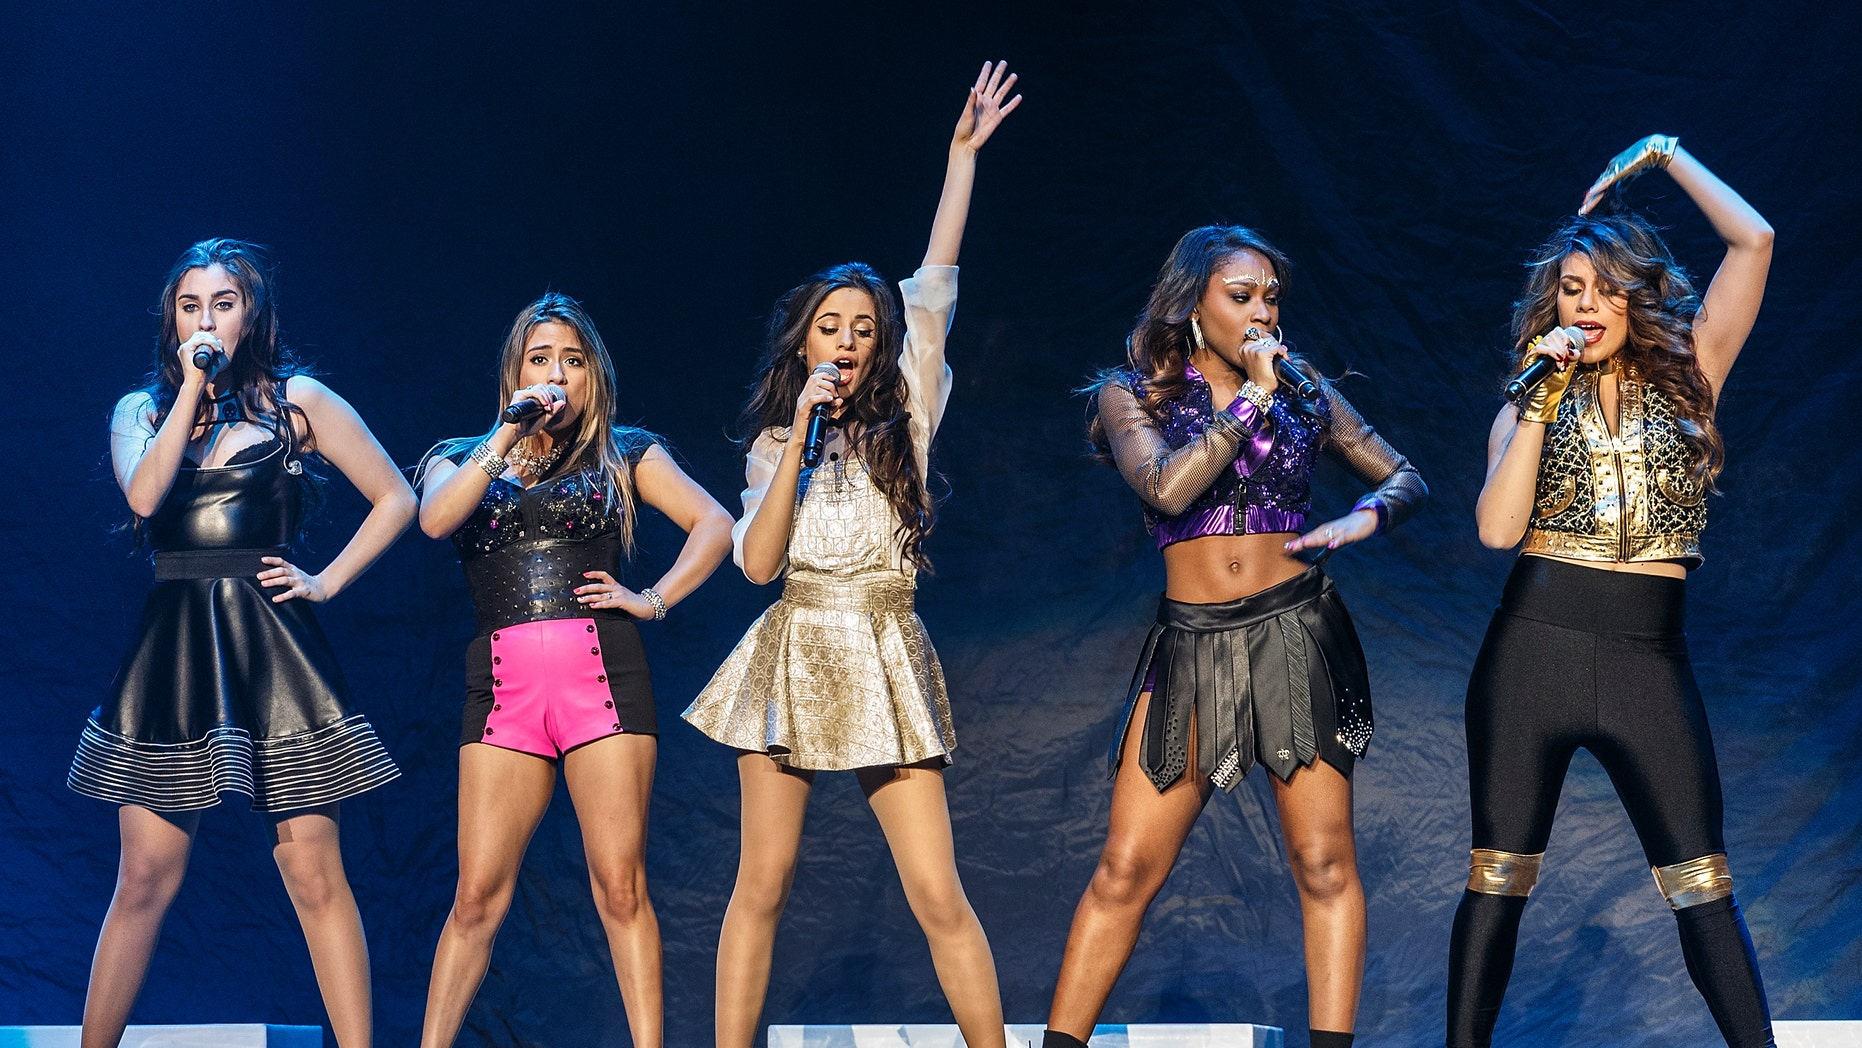 Fifth Harmony opens for Demi Lovato on February 9, 2014 in Vancouver, Canada.